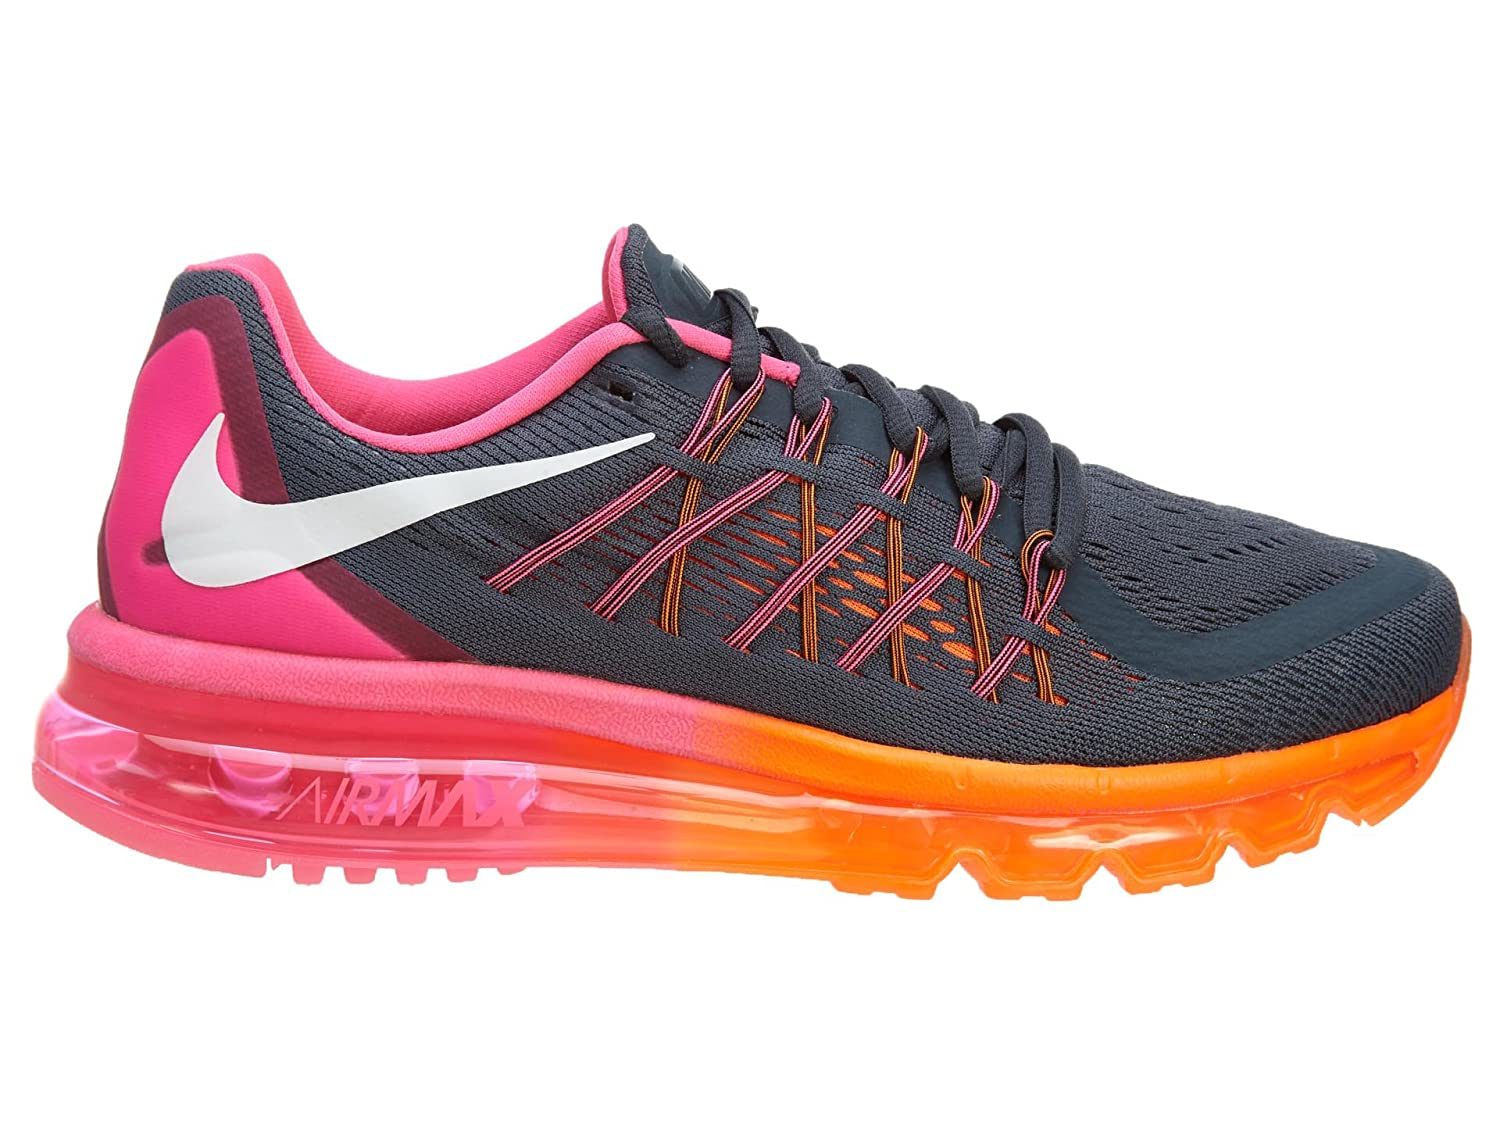 a77198487ed2 8e1e6 26735  new zealand amazon nike air max 2015 womens style 698903 002  size 9 m us fashion